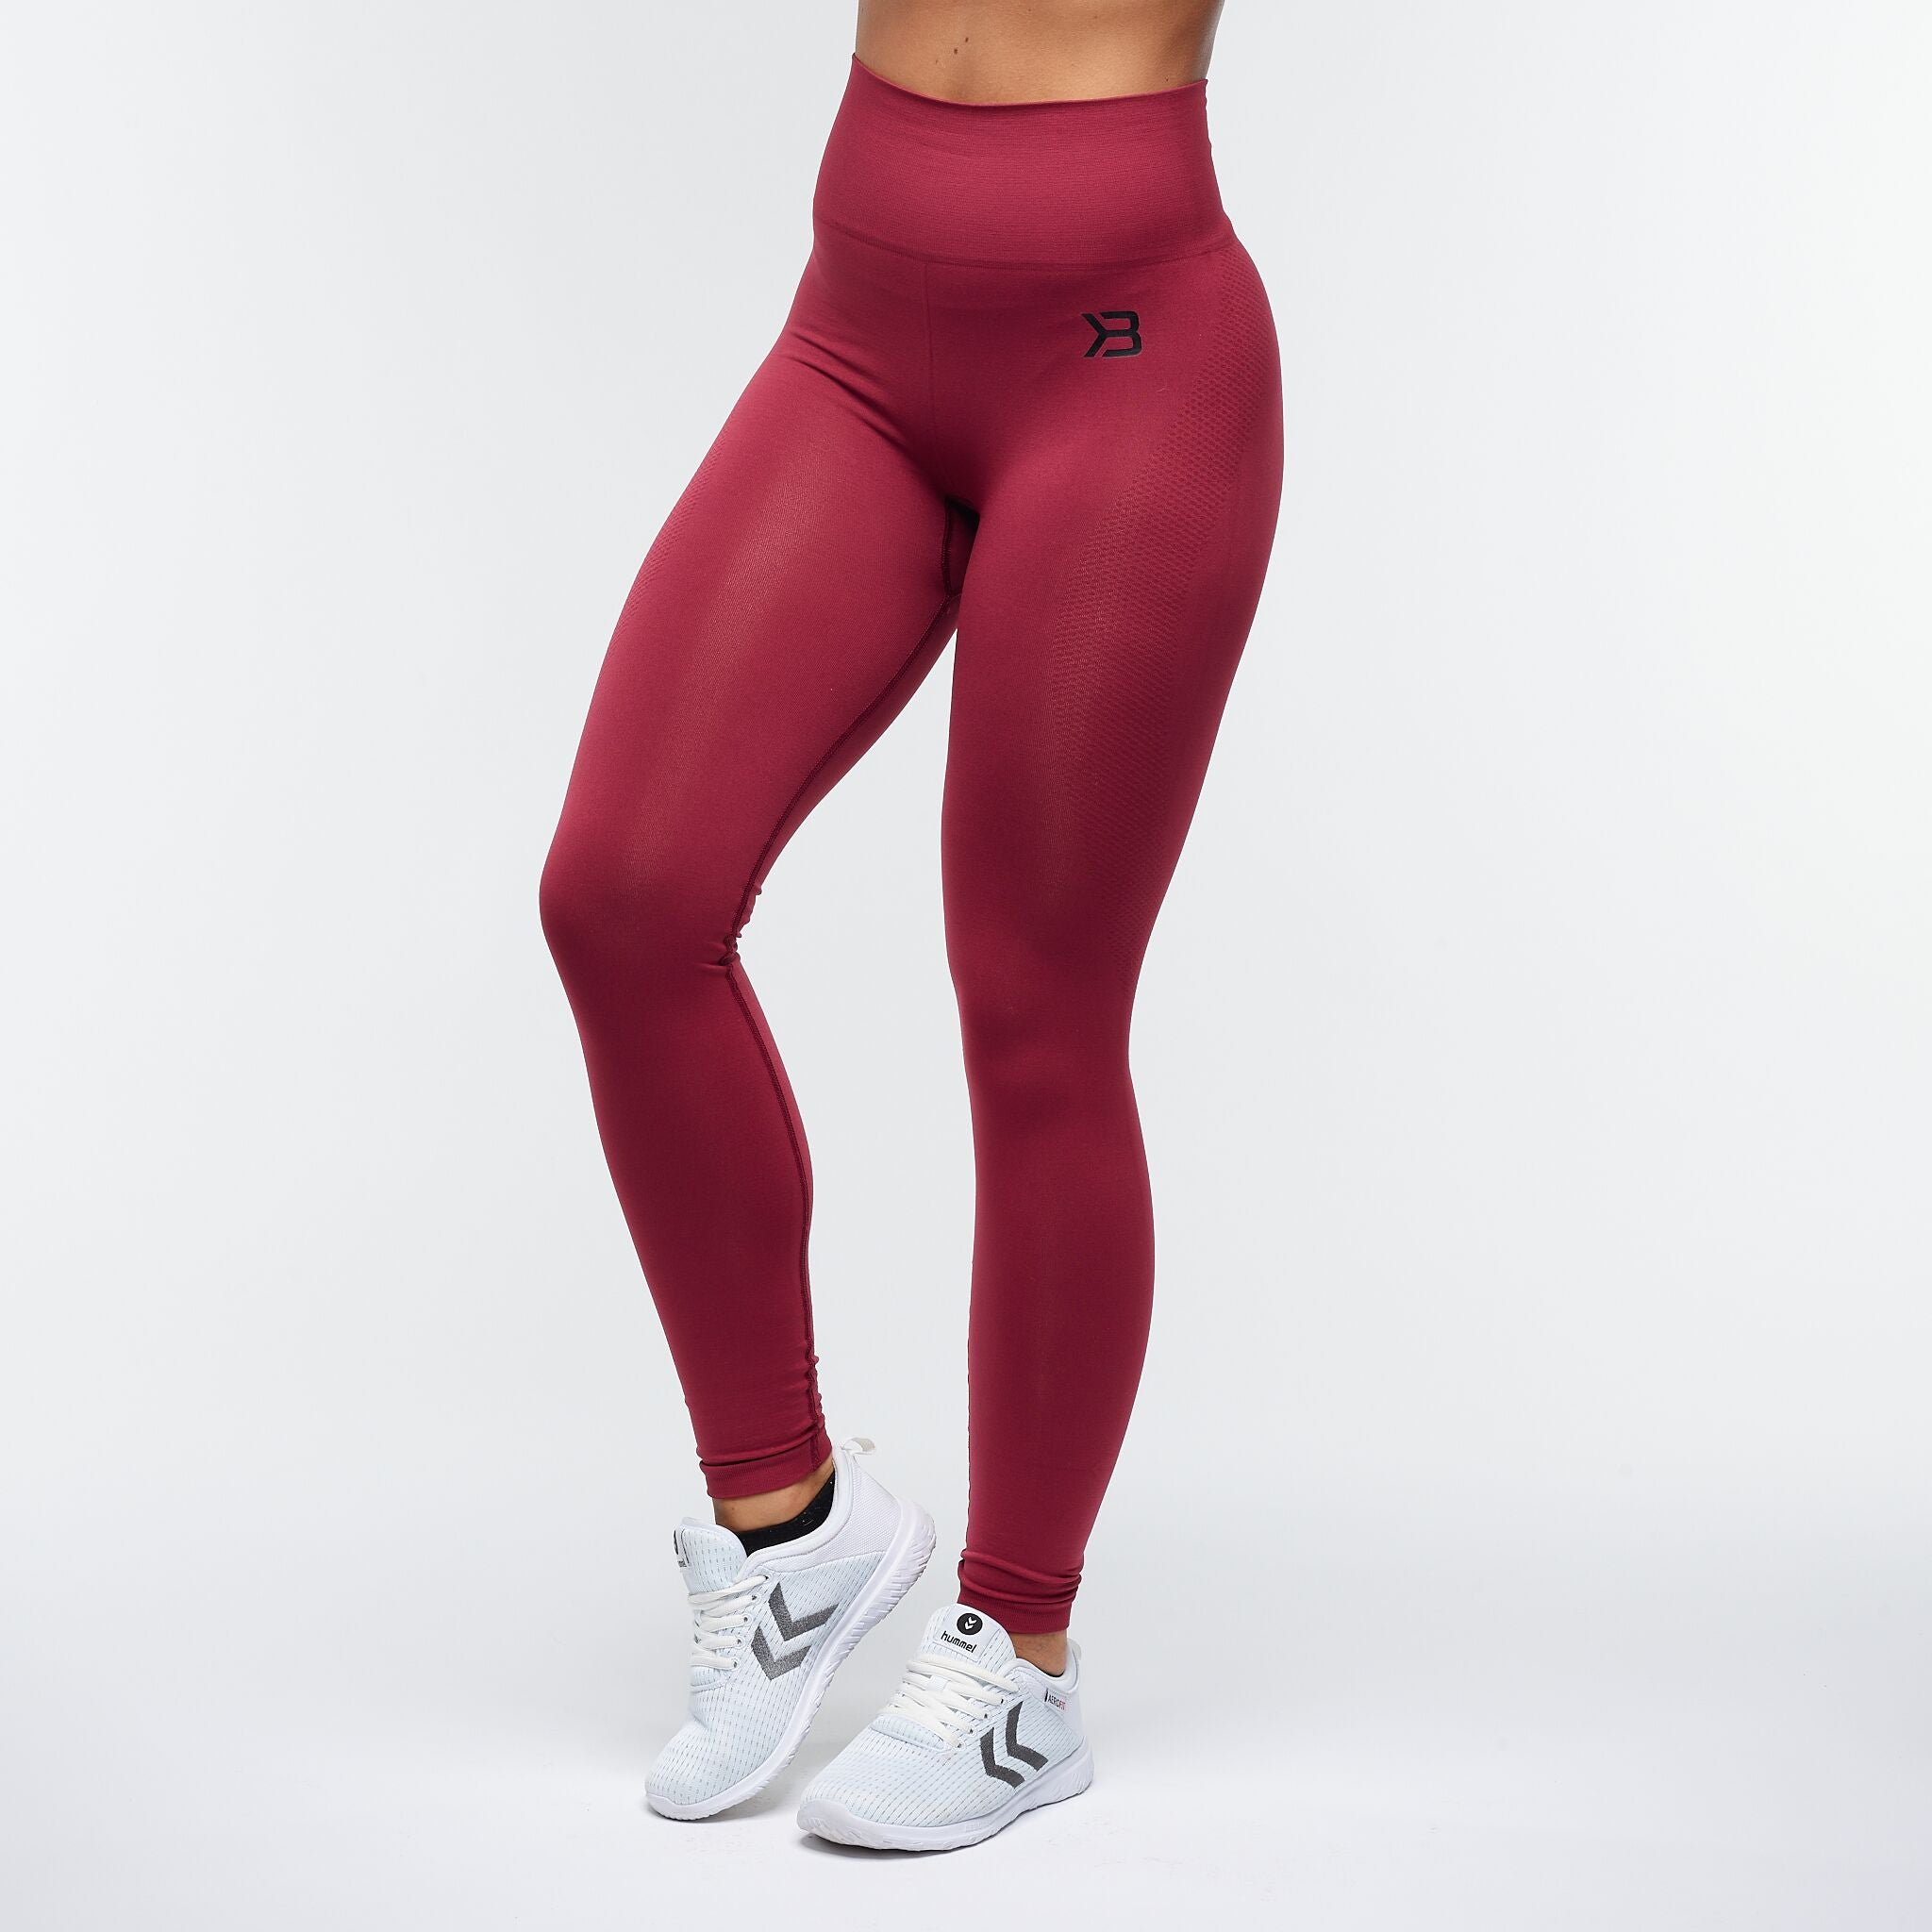 BETTER BODIES – ROCKAWAY TIGHTS SANGRIA